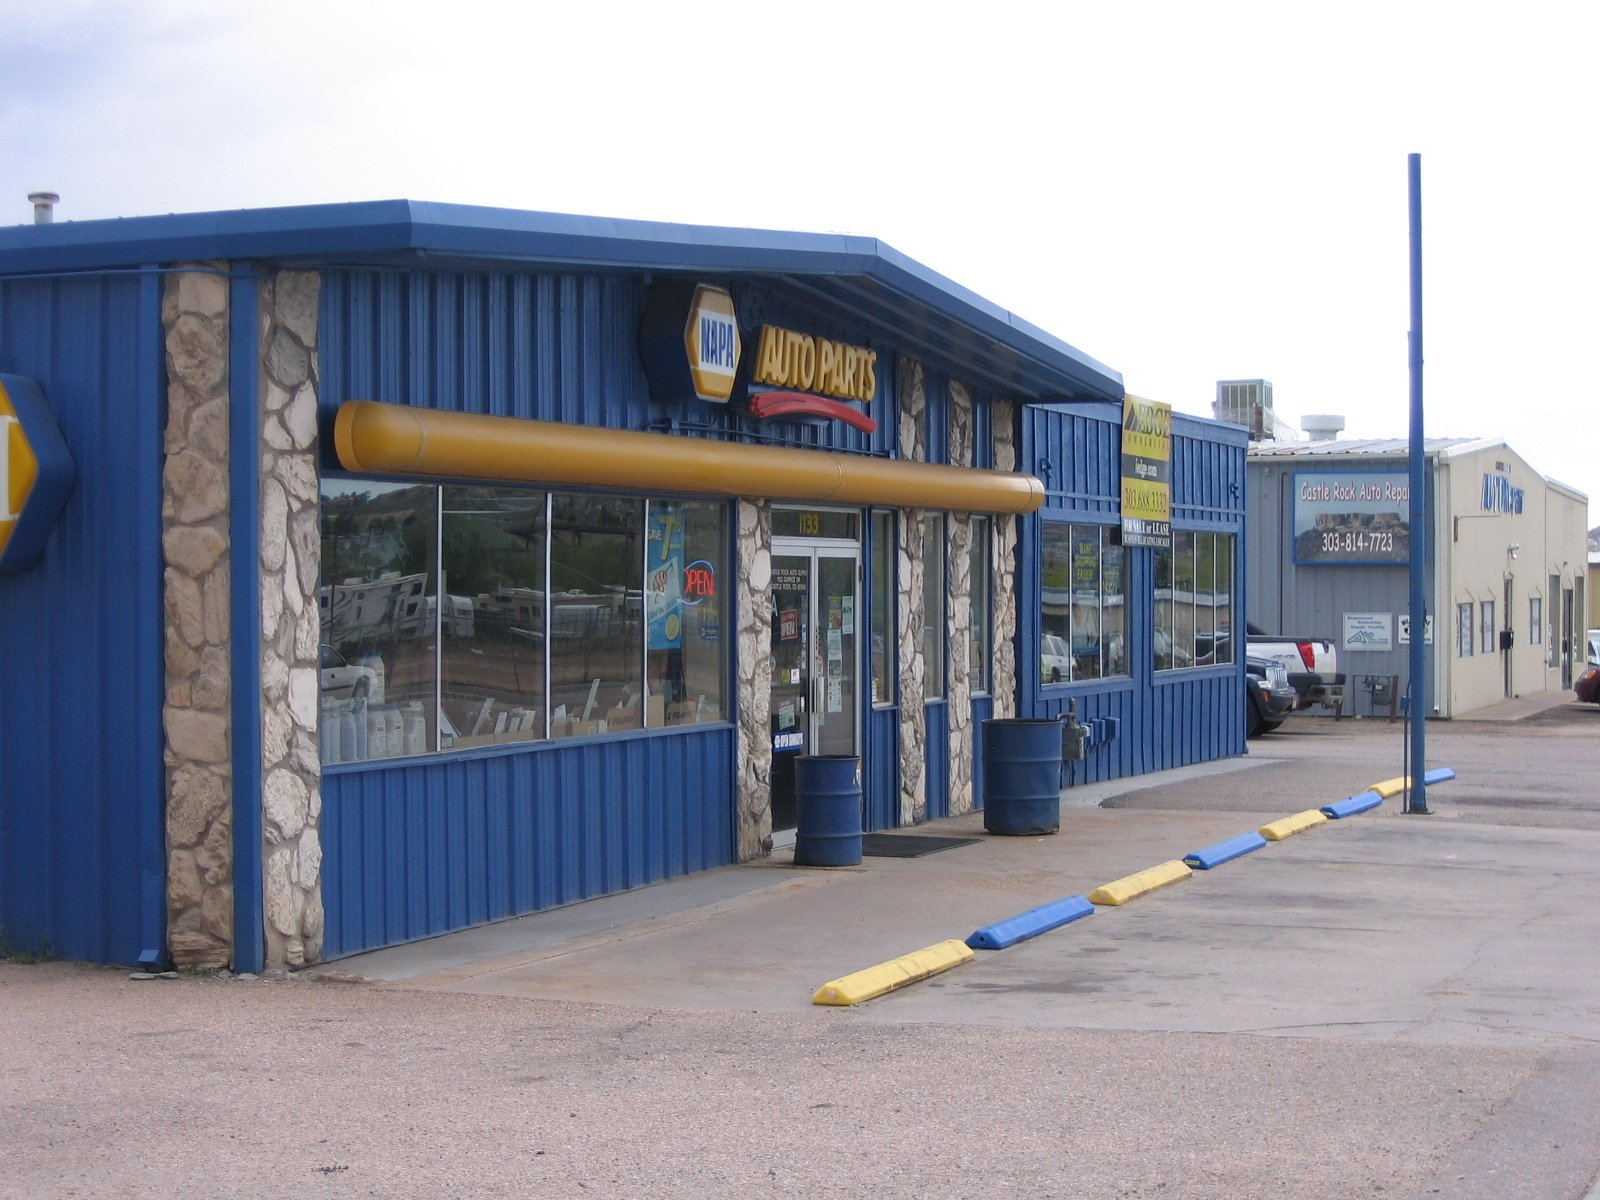 Retail/Flex Building in Castle Rock trades for $575,000